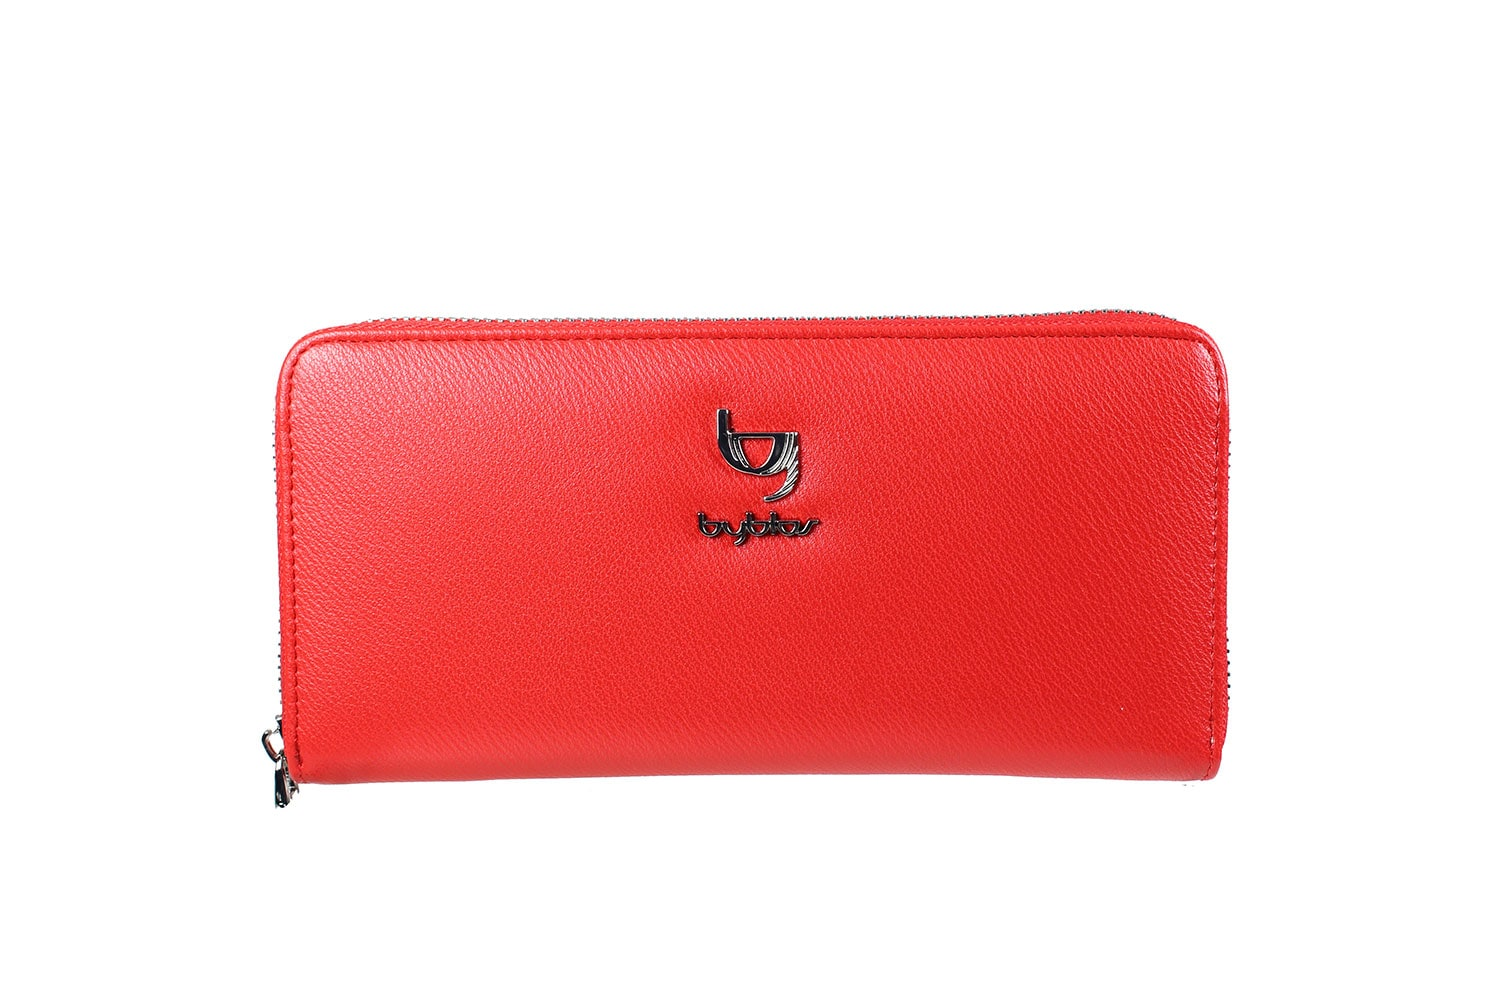 69469fefc1 BYBLOS Wallet ZIP AROUND 2WW0004 R150